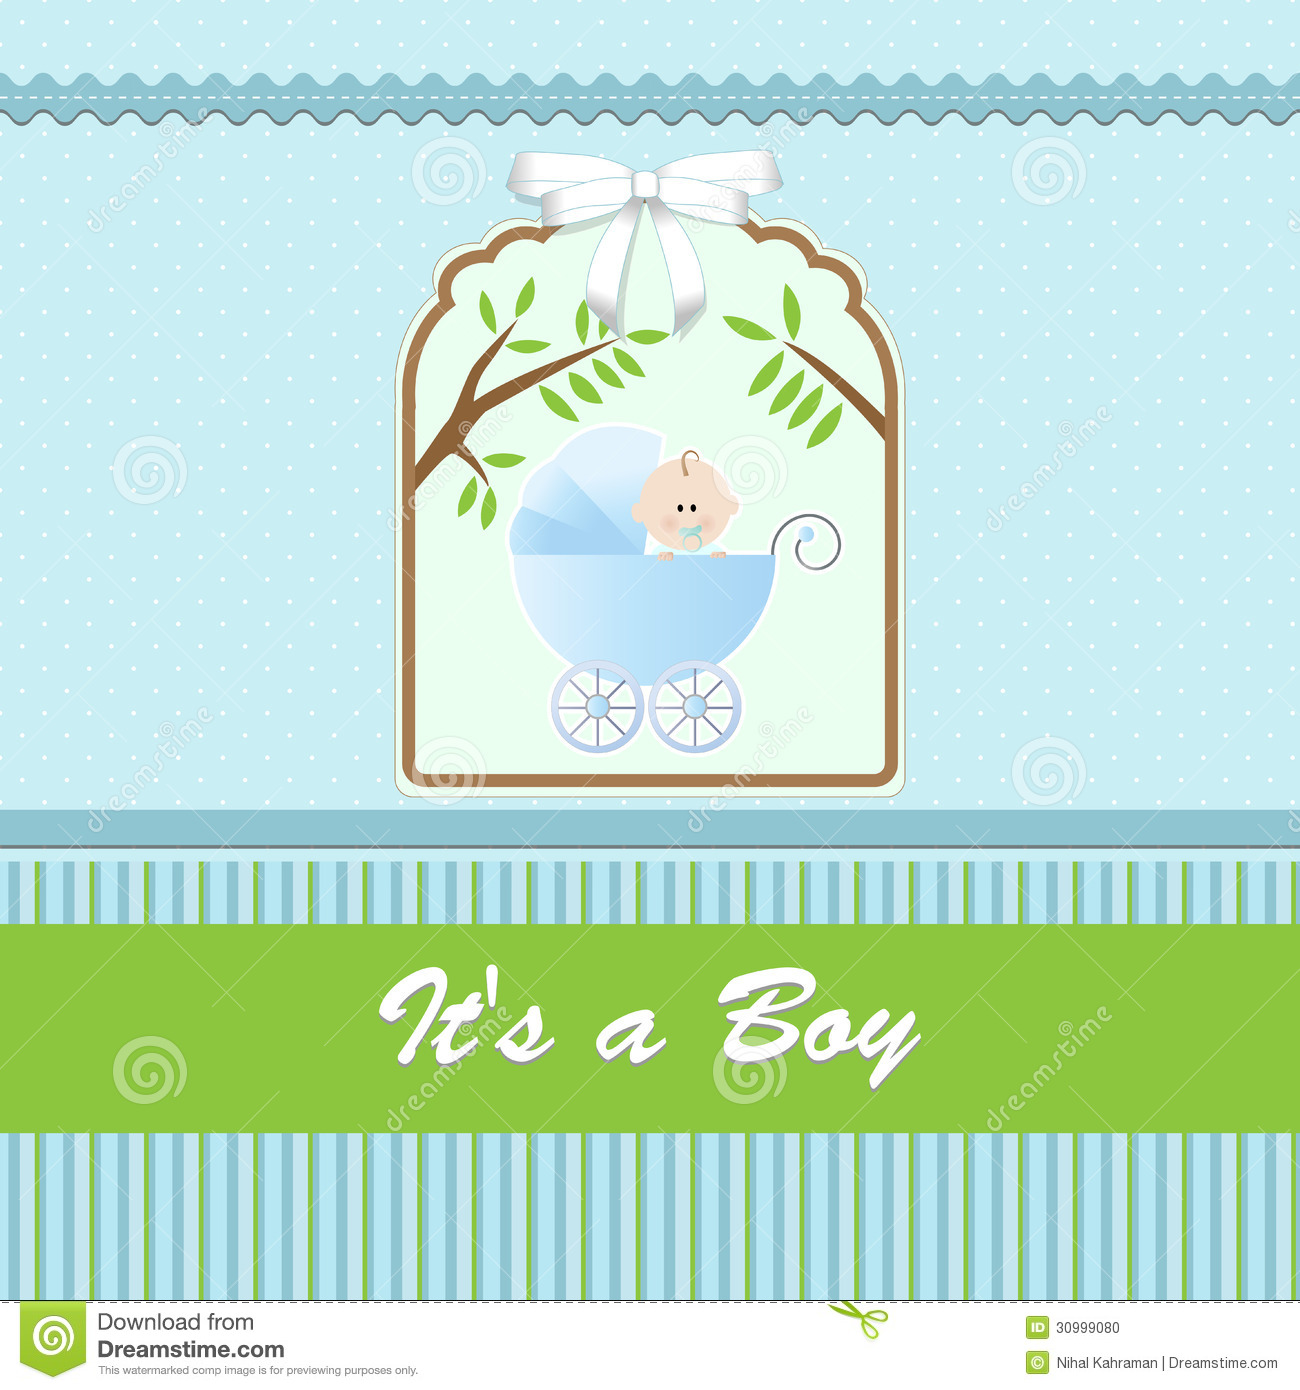 Baby boy background wallpaper baby boy background images baby boy - Baby Shower Card For Baby Boy With Stroller And Blue Green Background Stock